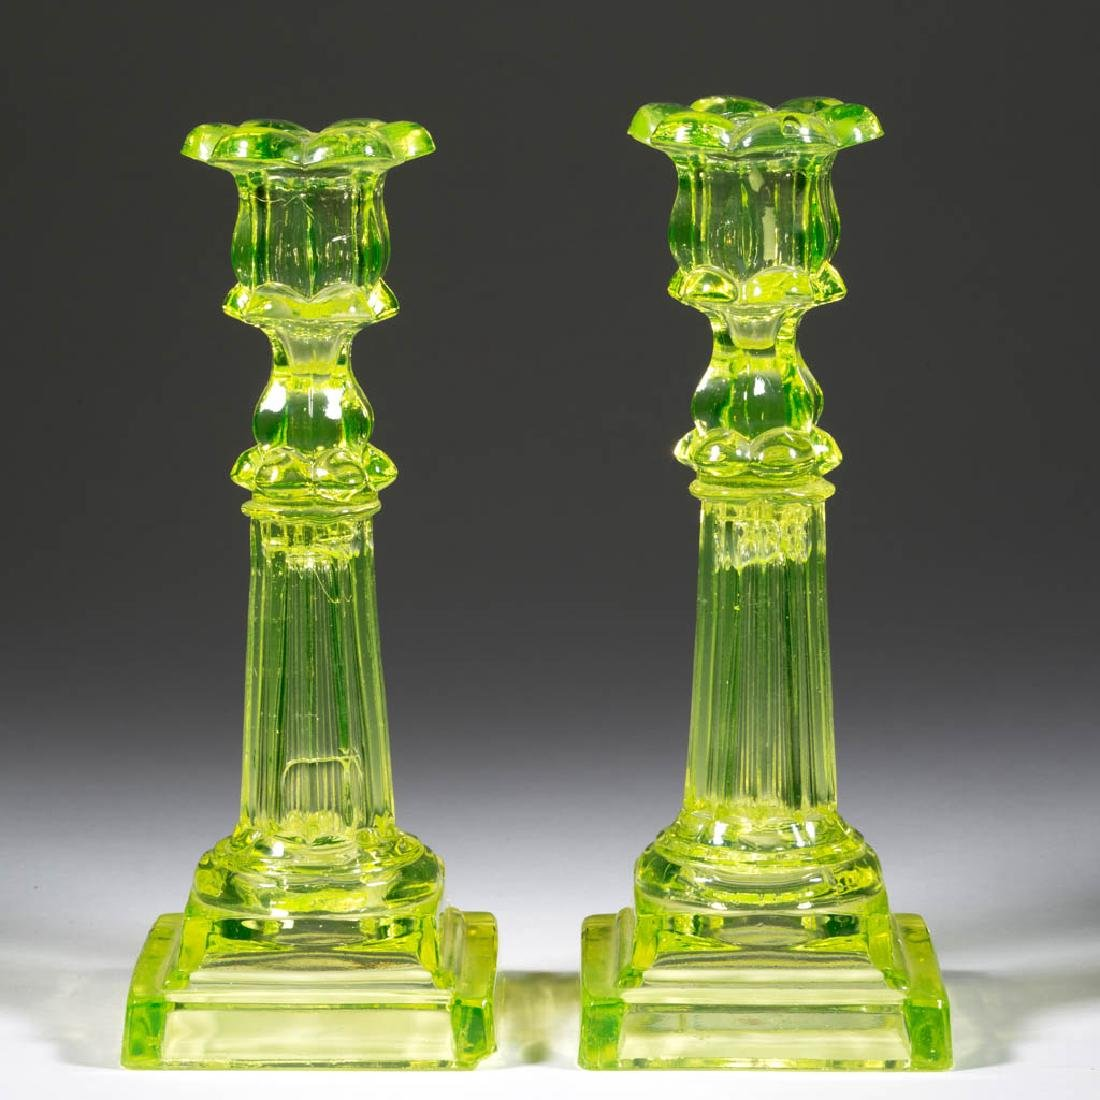 PRESSED PETAL AND COLUMNAR NEAR PAIR OF CANDLESTICKS